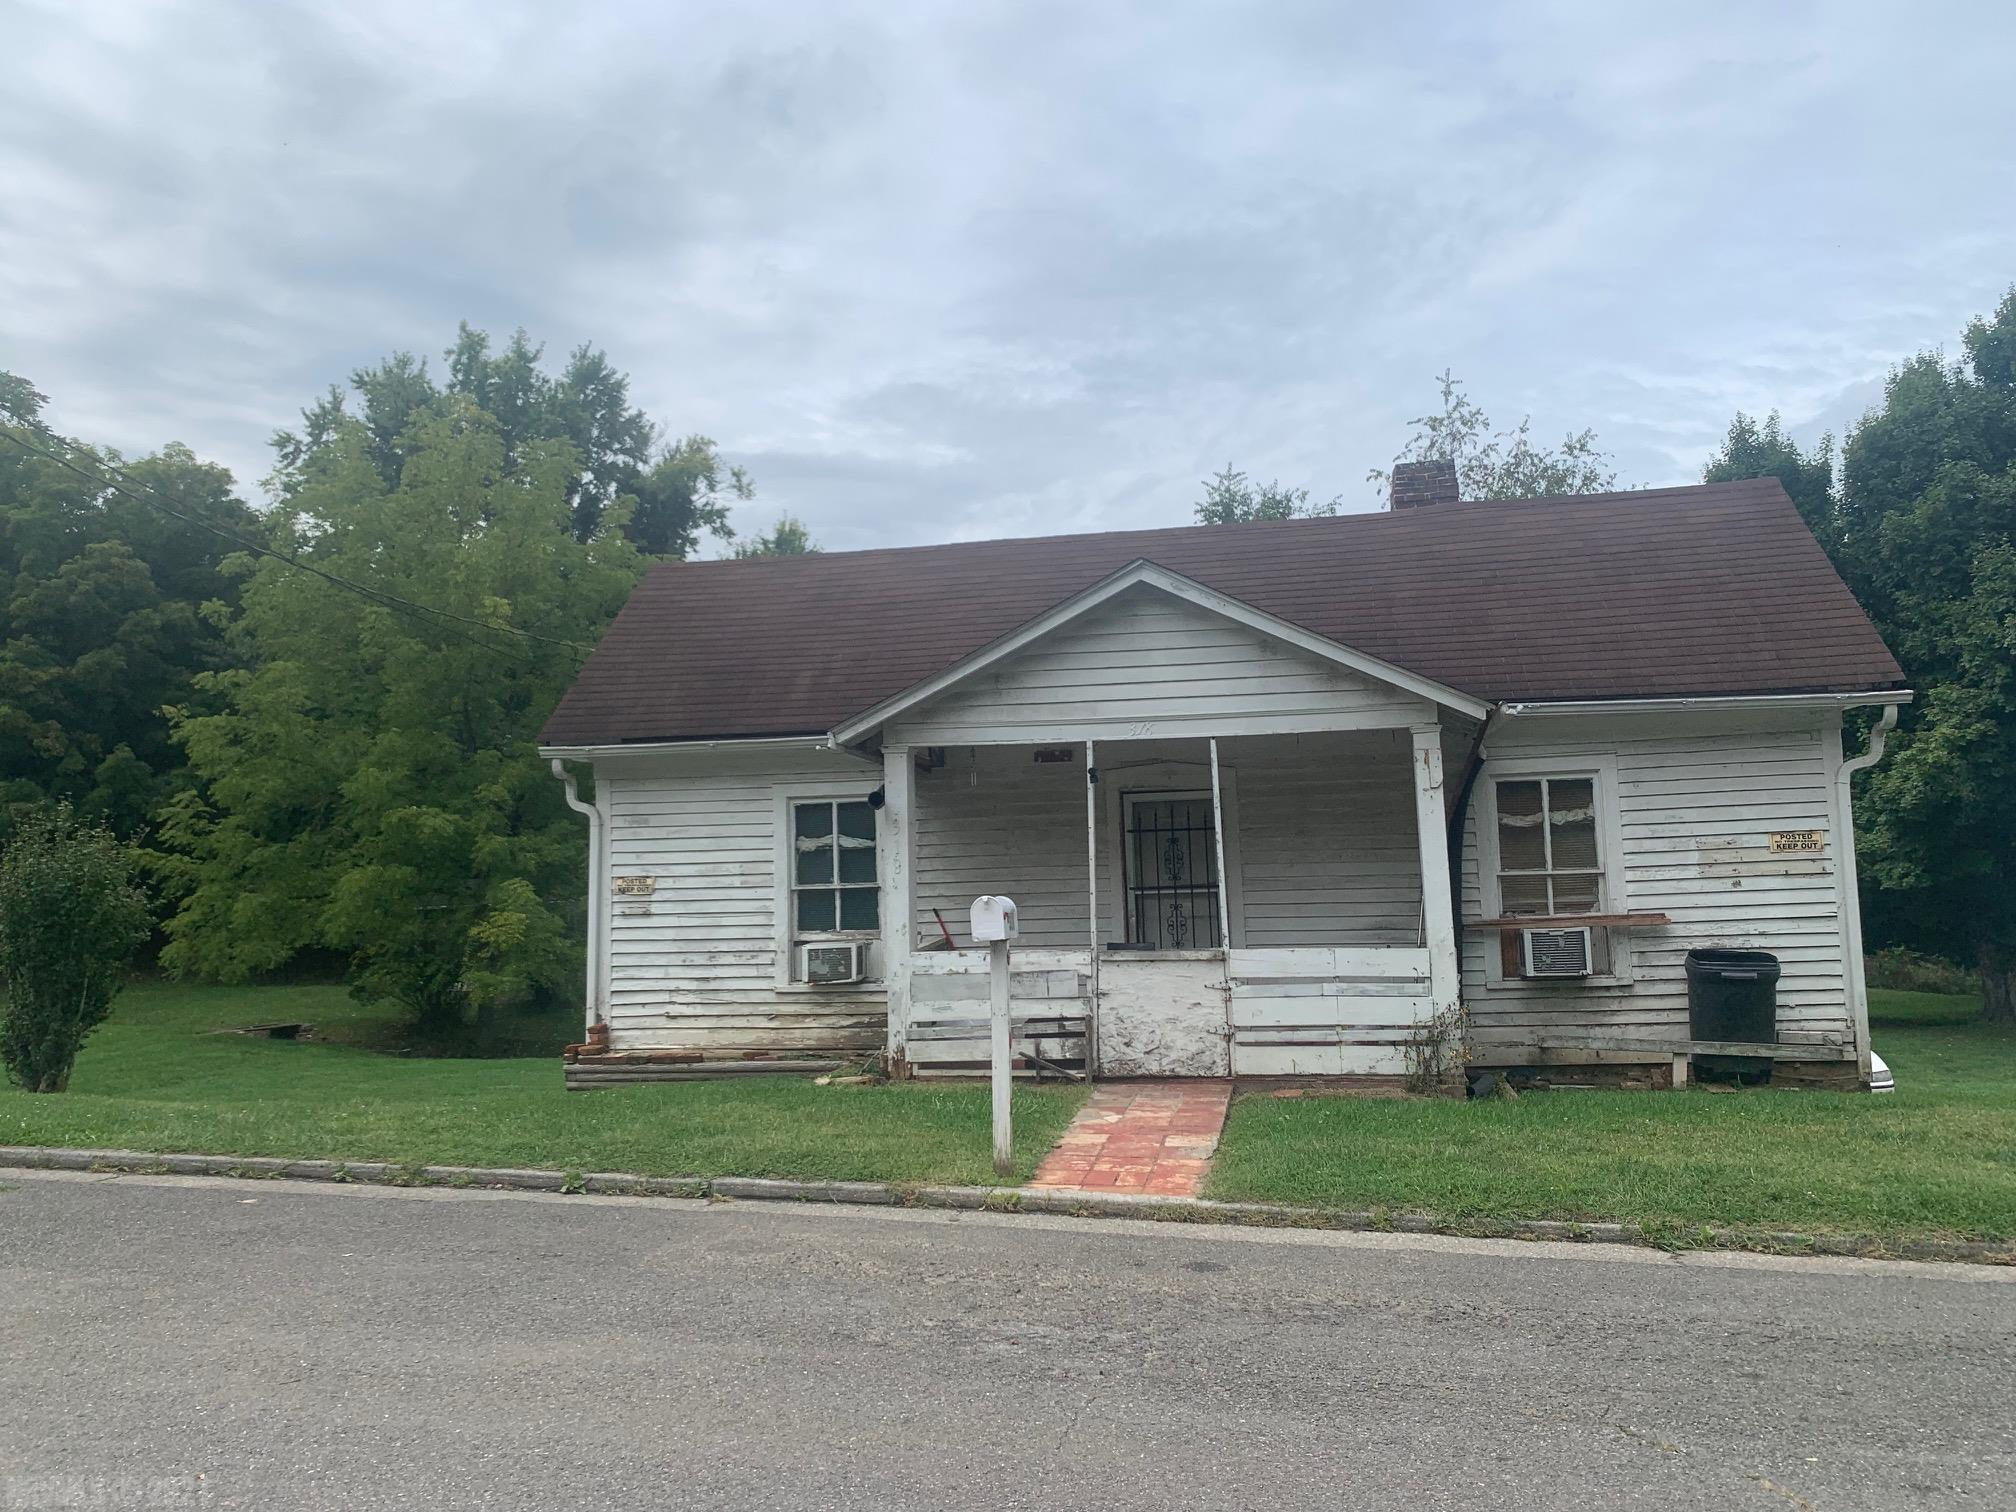 Perfect investment starter home in the Town of Pulaski. Walking distance to local shopping downtown and restaurants. Enjoy your large yard with the peaceful creek flowing through. The covered front porch is a perfect place to enjoy your favorite book or cup of coffee.